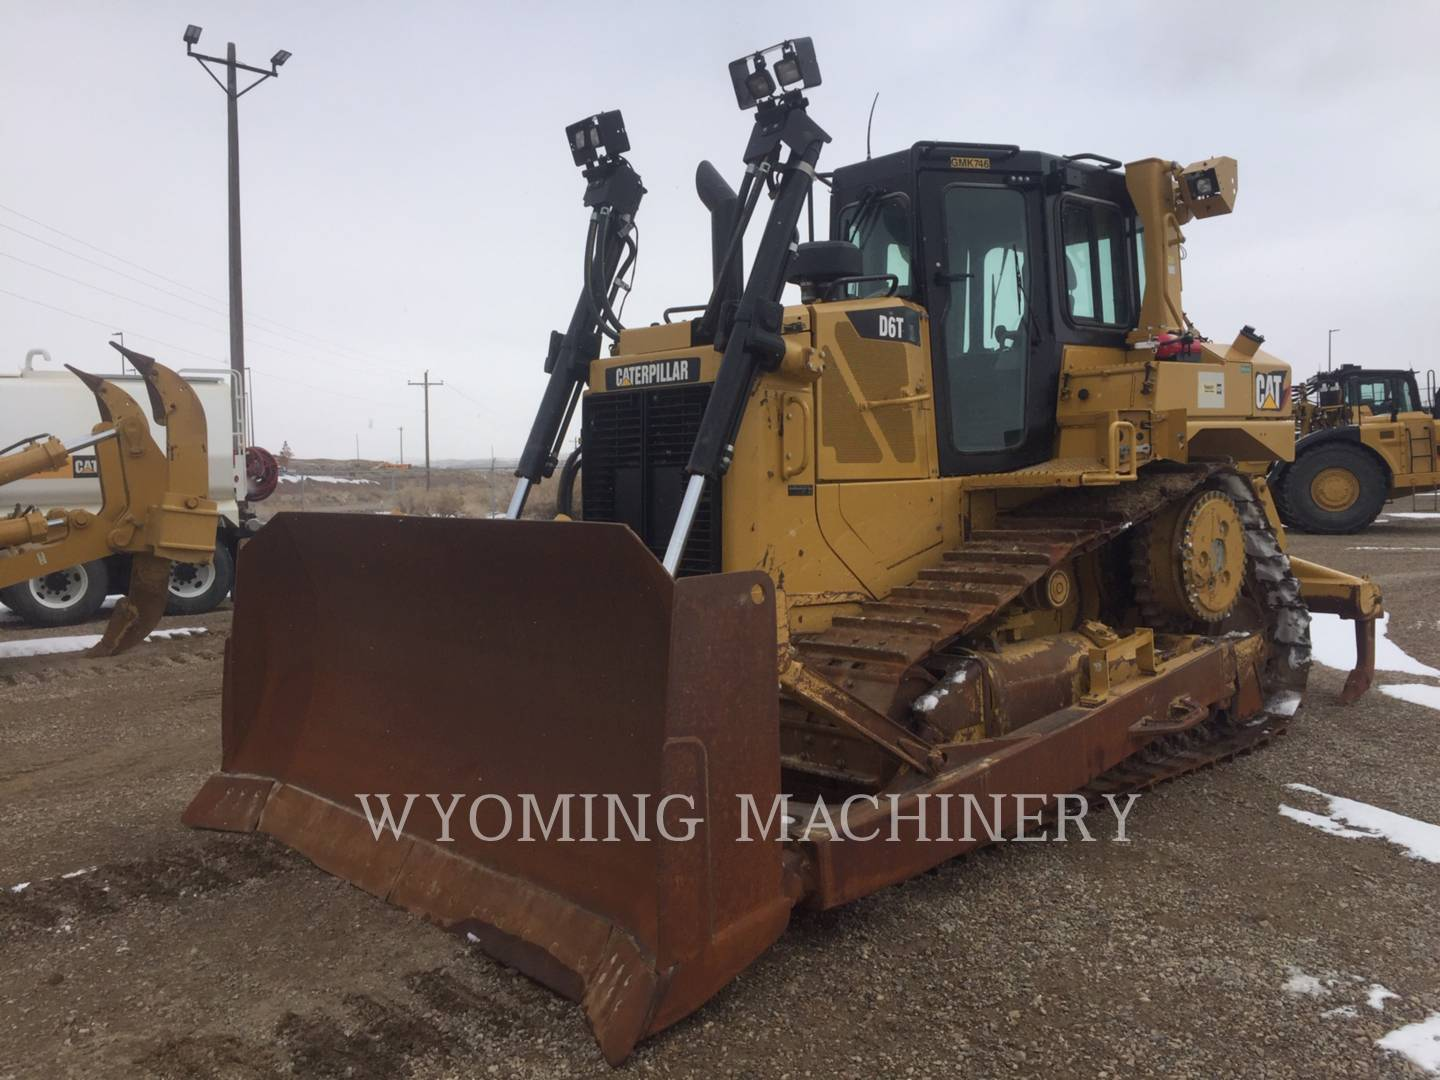 2012 Caterpillar D6T Dozer for sale in CASPER, WY | IronSearch